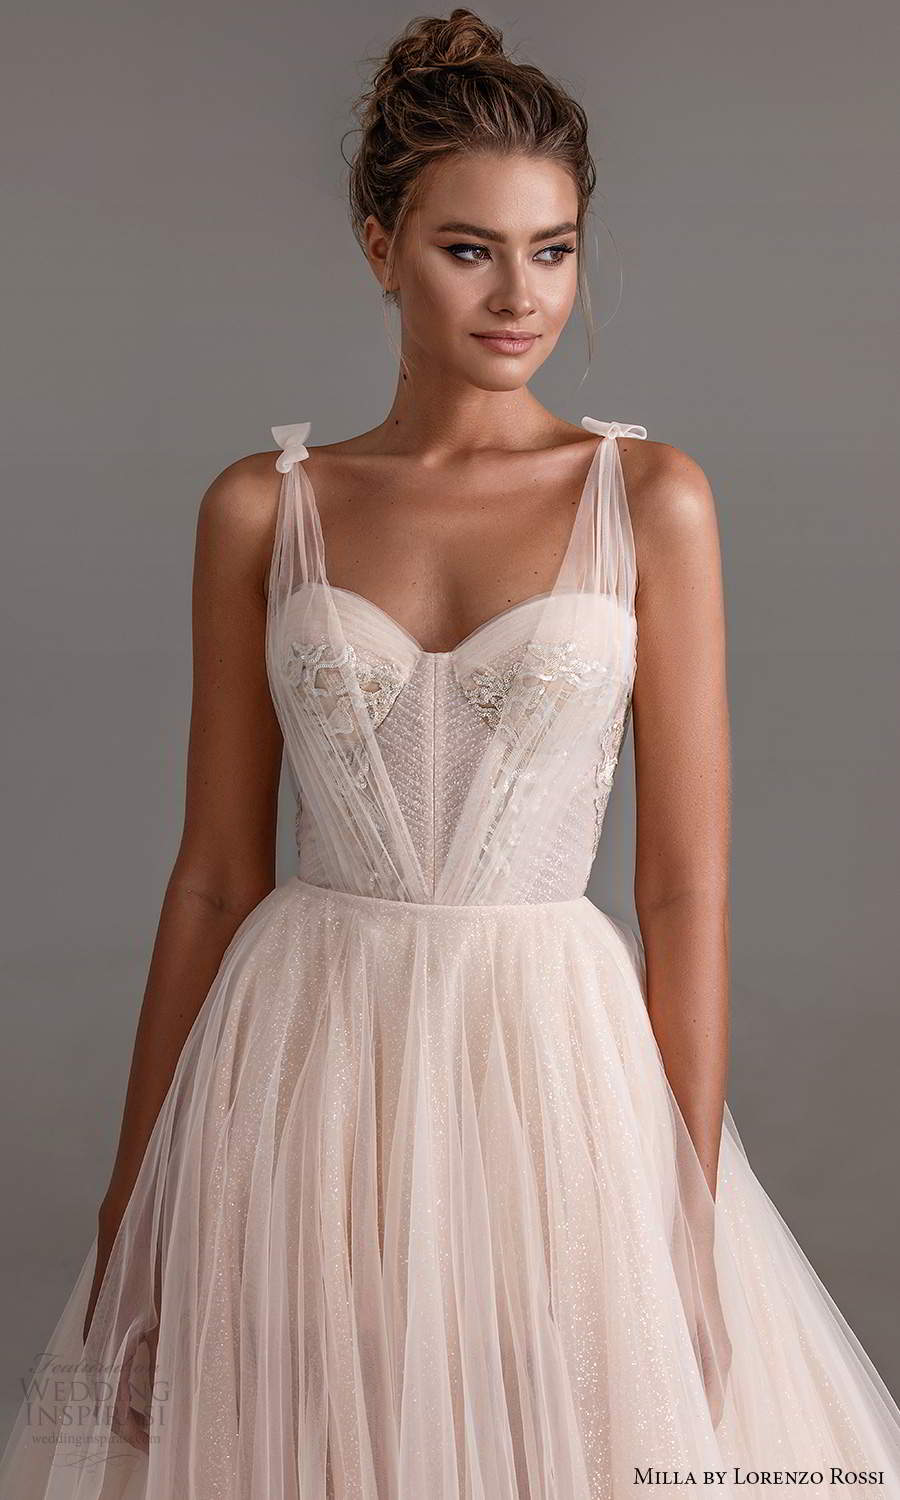 milla by lorenzo rossi 2020 rtw sleeveless ruched straps sweetheart corset bodice a line ball gown wedding dress chapel train (16) zv